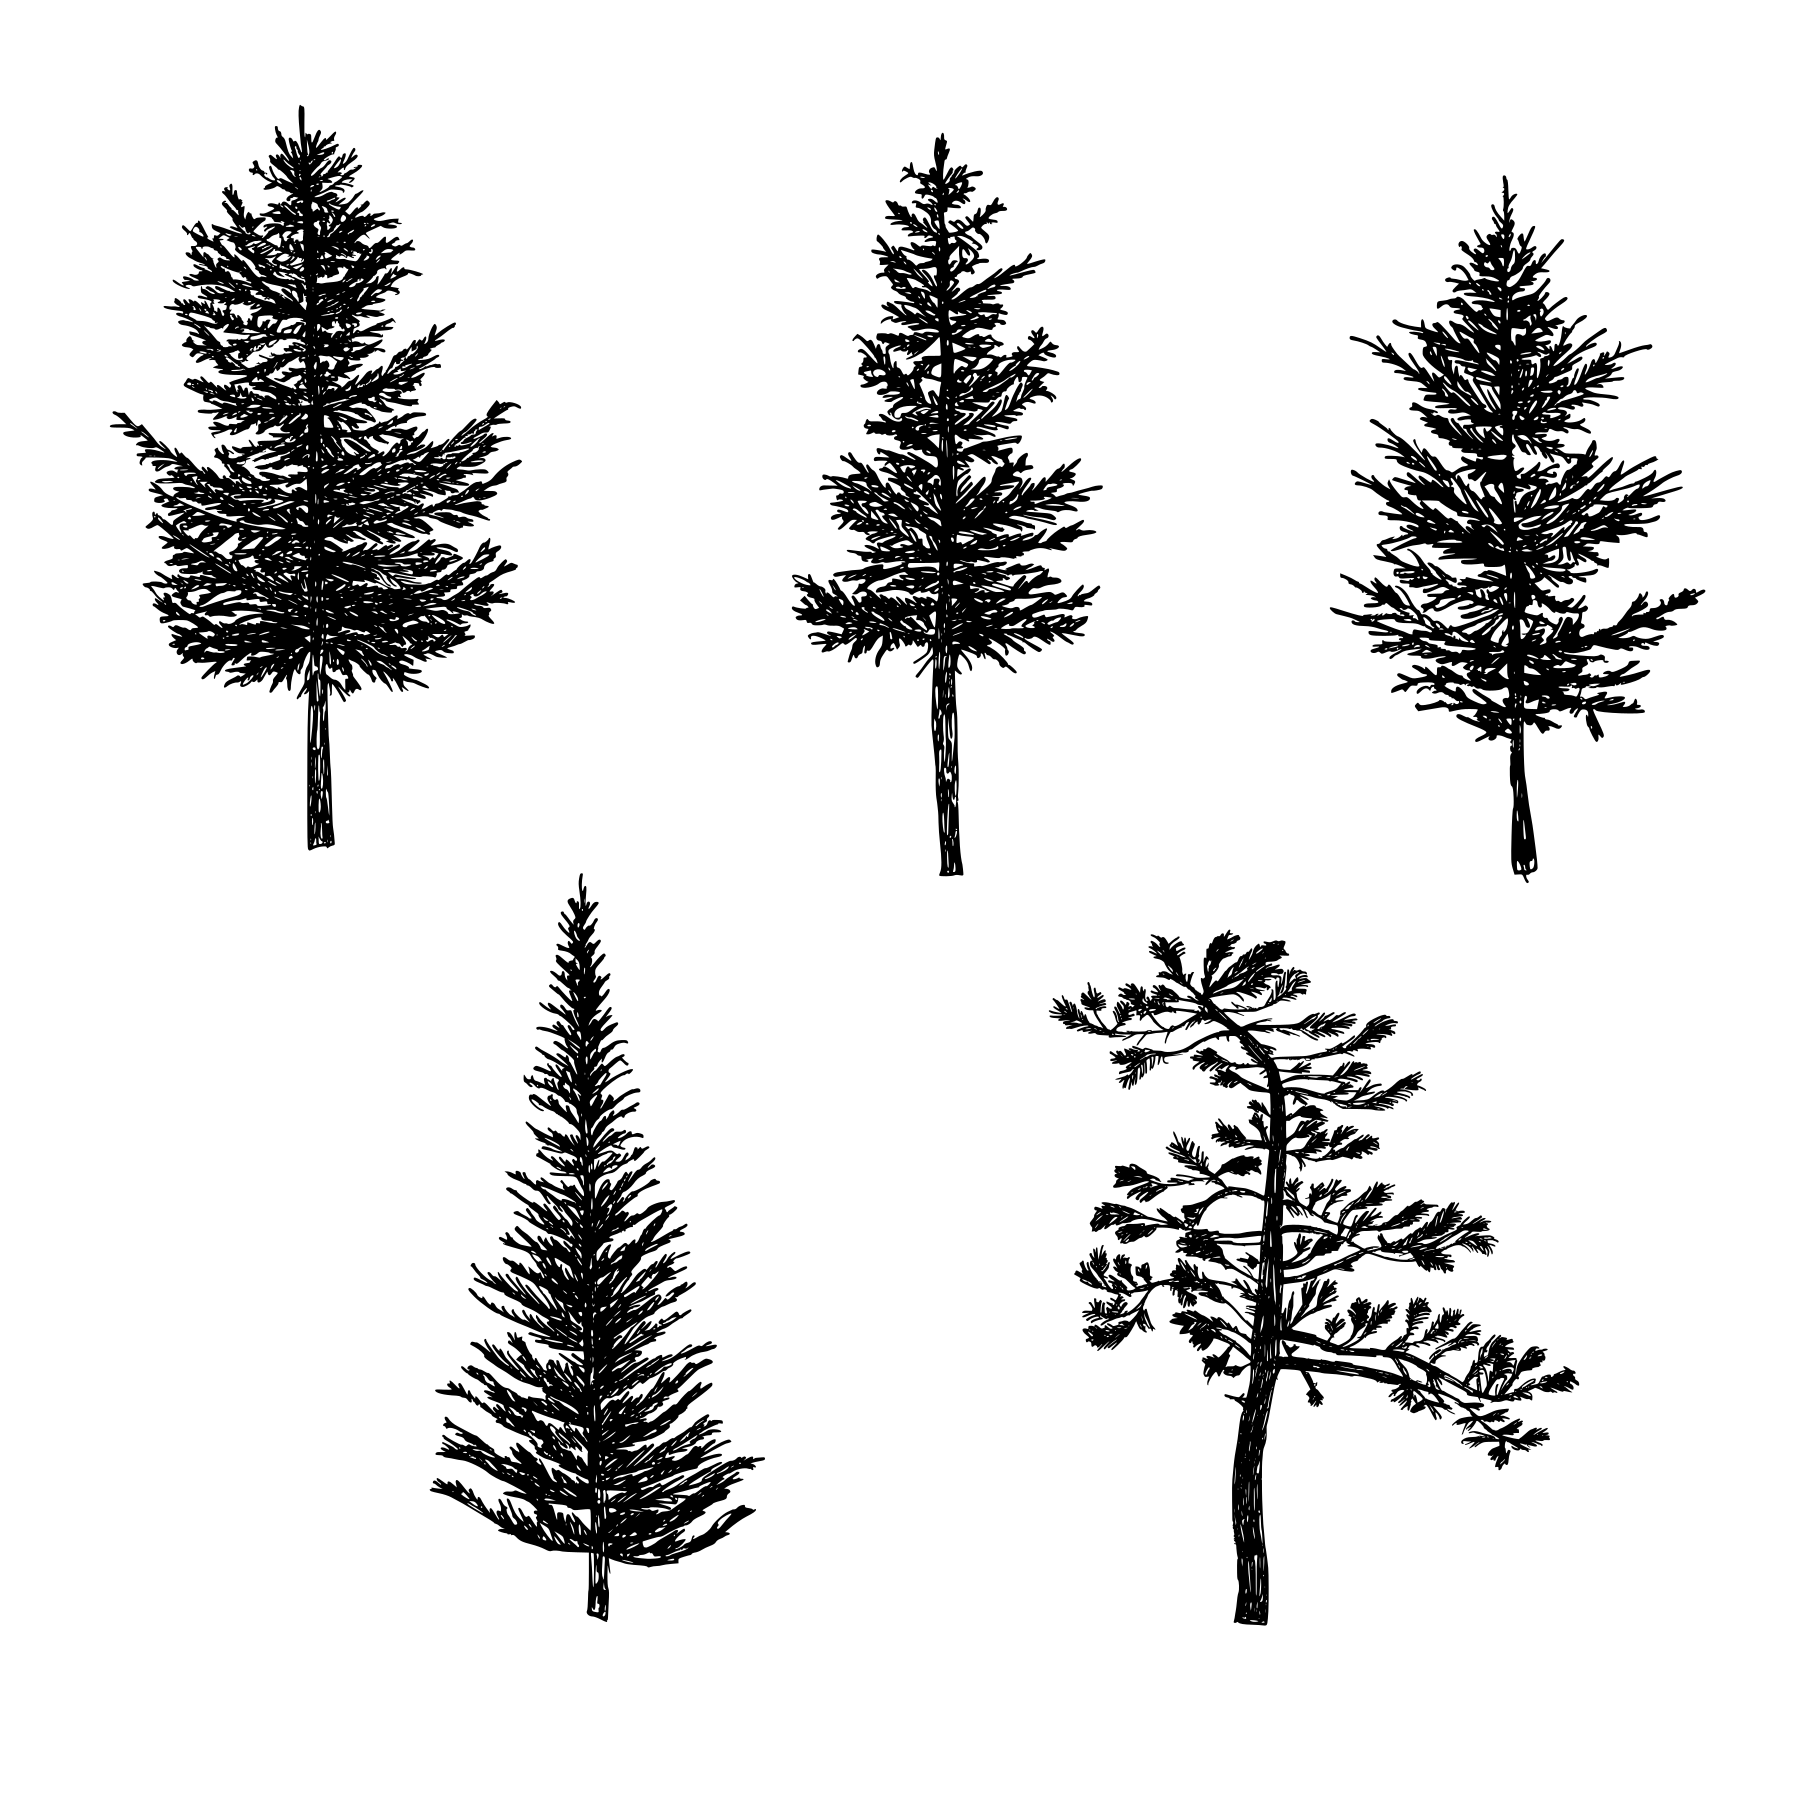 5 Pine Tree Silhouette Drawing Png Transparent Onlygfx Com Pine Tree Silhouette Silhouette Drawing Tree Silhouette